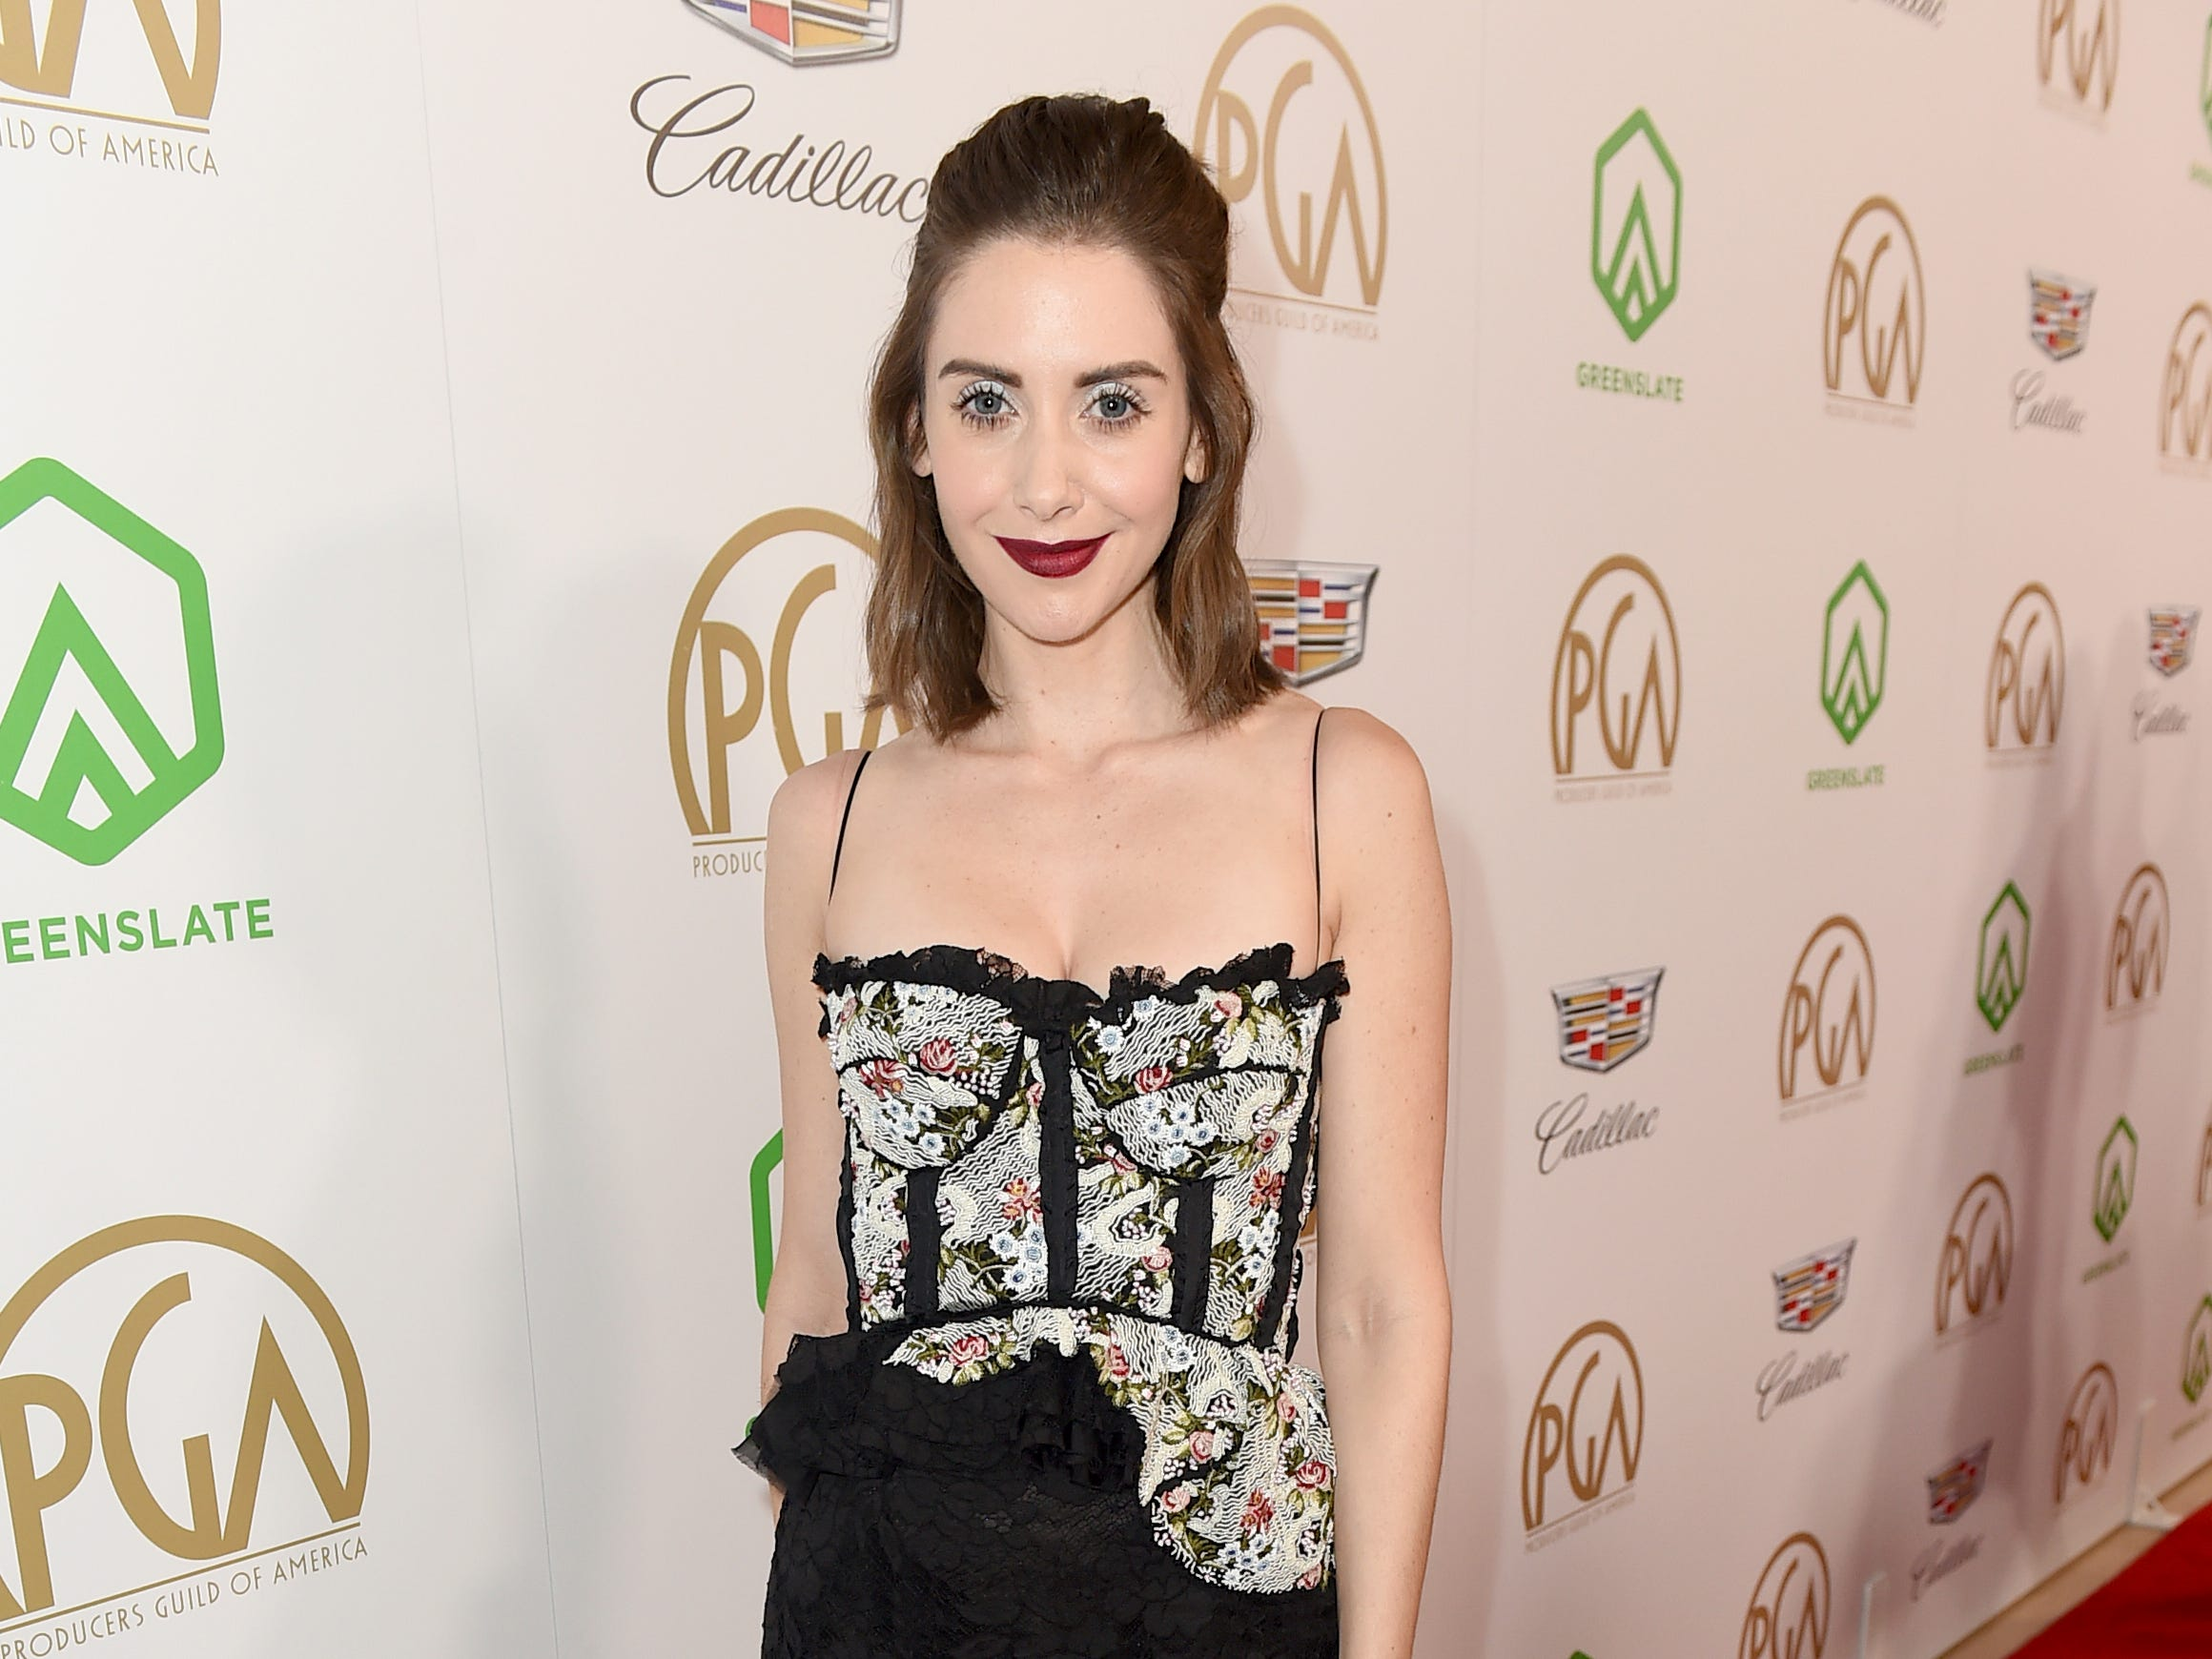 IMAGE DISTRIBUTED FOR PRODUCERS GUILD OF AMERICA - Alison Brie arrives at the 30th Producers Guild Awards presented by Cadillac at the Beverly Hilton on Saturday, Jan. 19, 2019, in Beverly Hills, Calif. (Photo by Jordan Strauss/Invision for Producers Guild of America/AP Images) ORG XMIT: CALB114